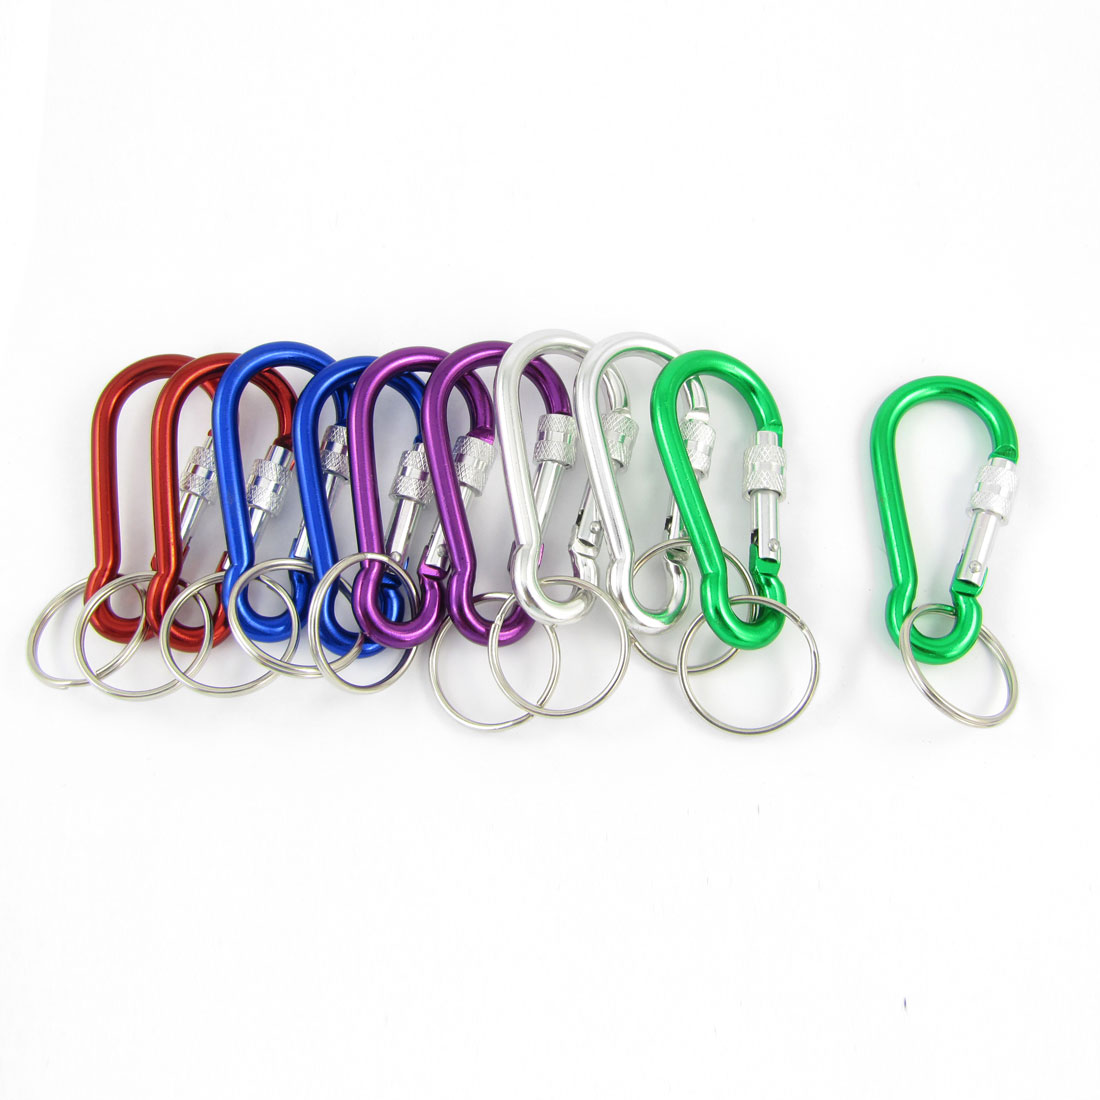 10 pcs Assorted Colored D Shape Aluminum Alloy Hiking Keychain Snap Clip Carabiner Hook Tool